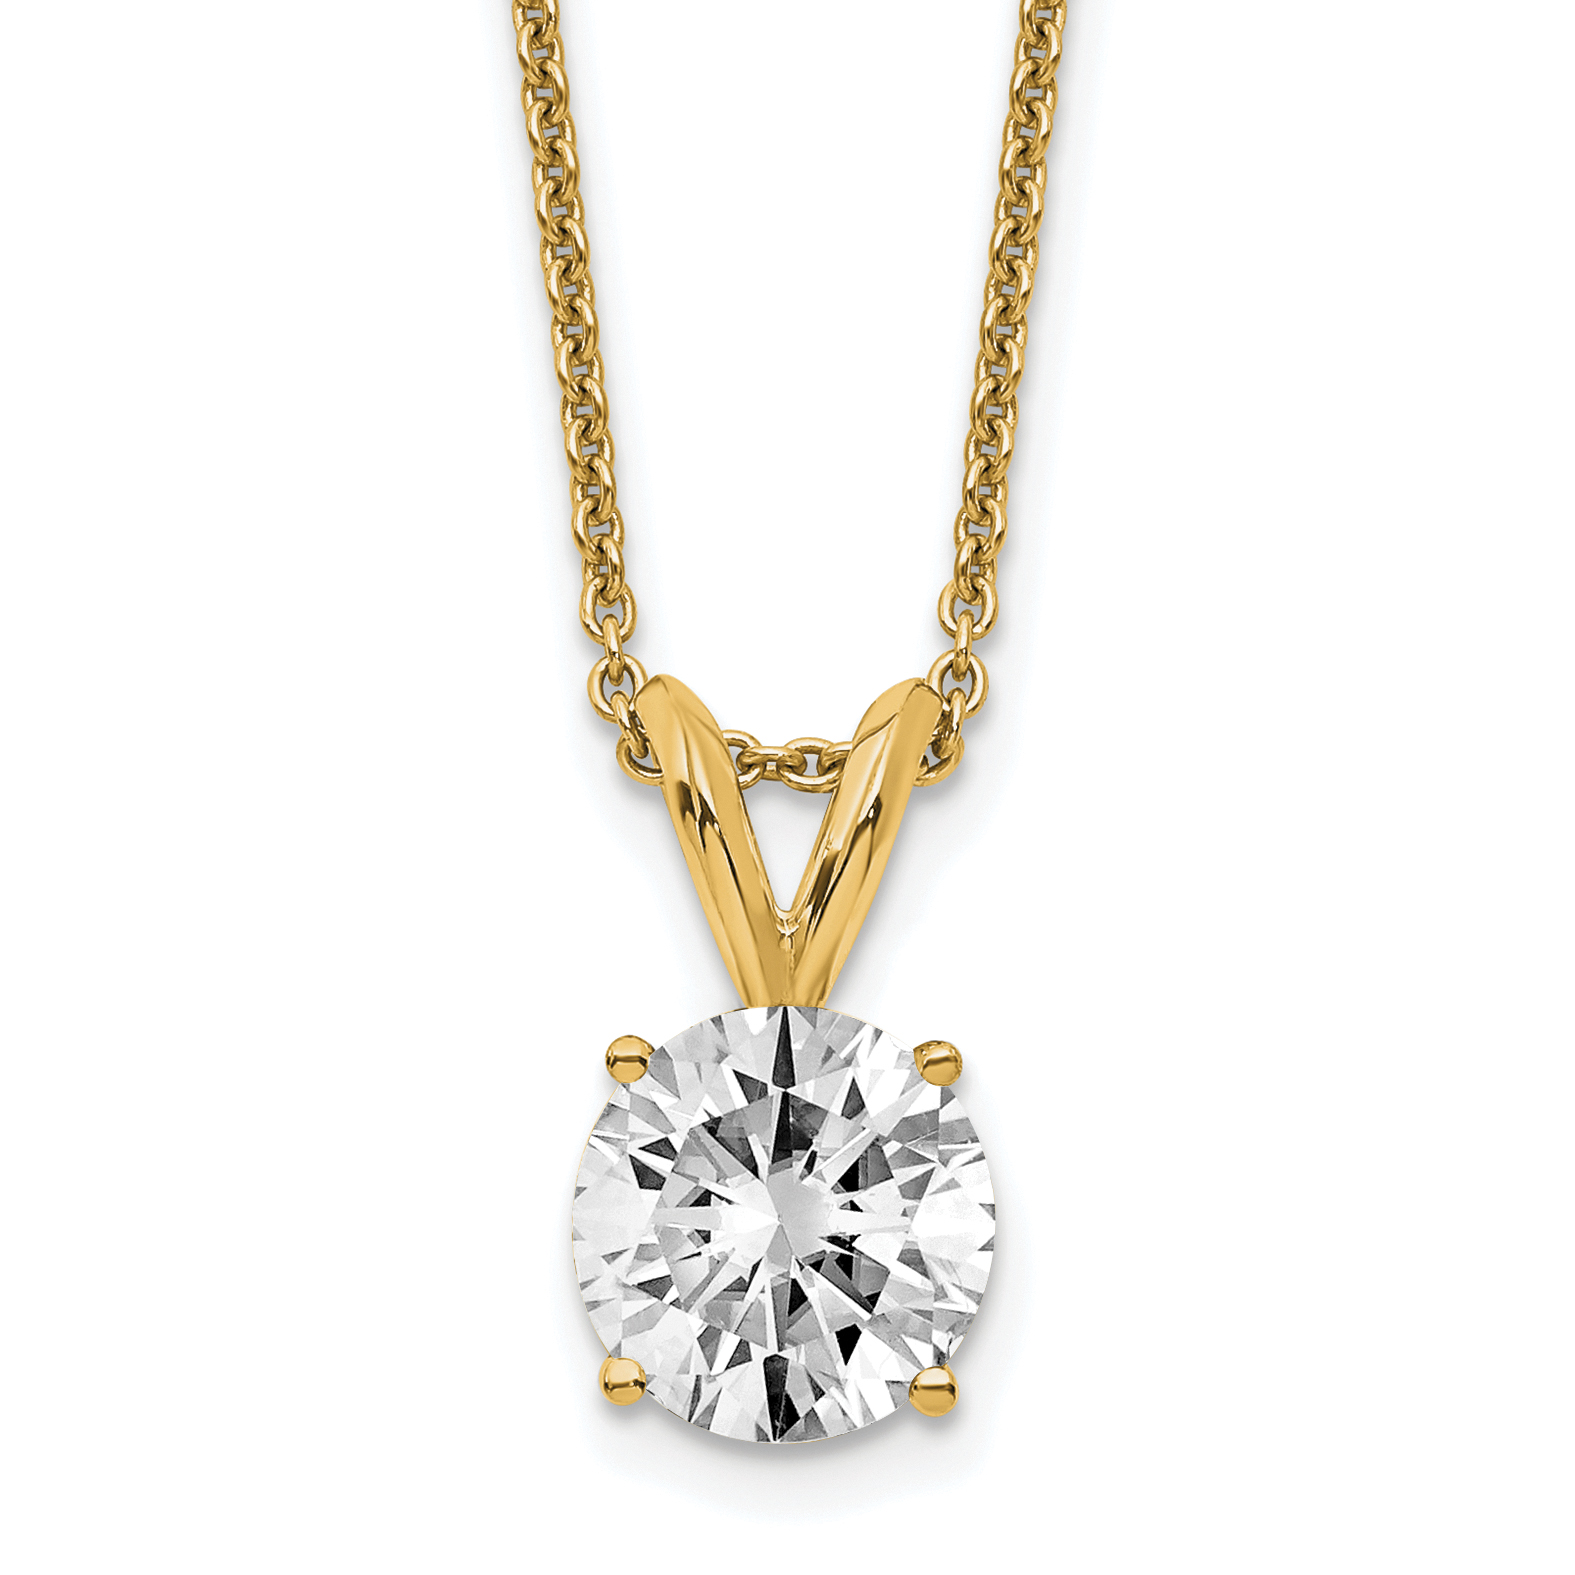 bri quotbriquot holder the moissy of necklace online jewellery ring fine moissanite